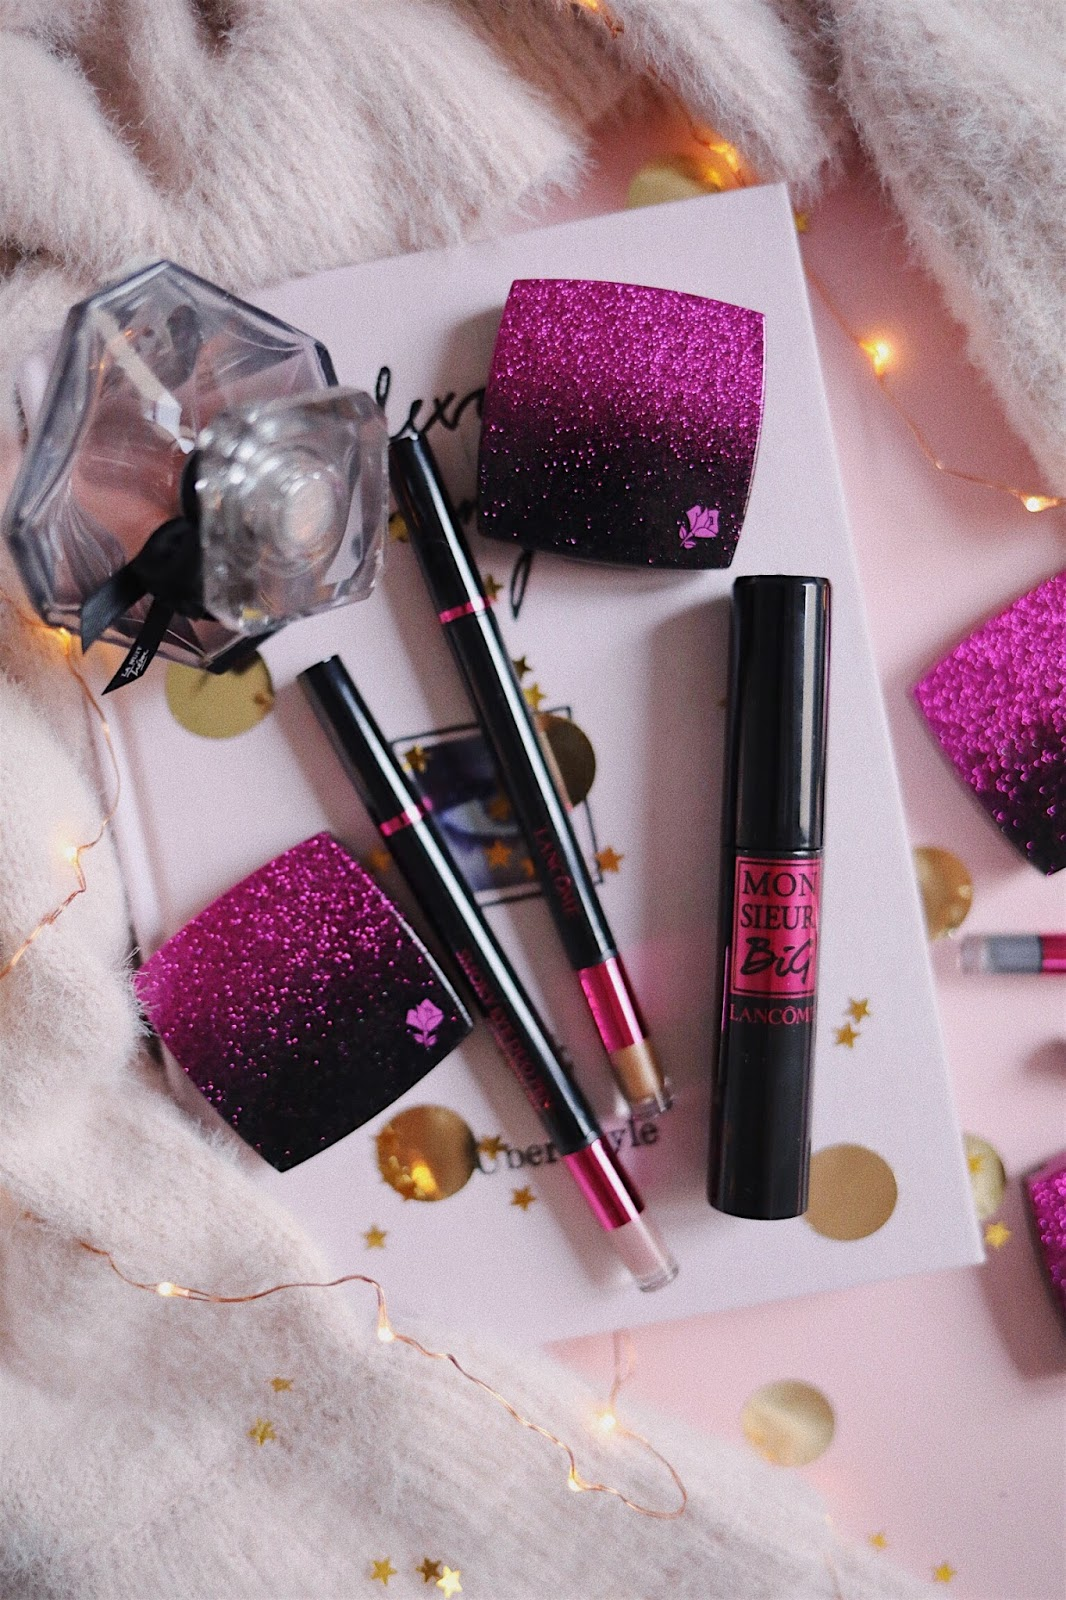 Lancôme,Sephora,Instatrend,Ombre Hypnose Ultra,Smoky Duo Pen ,Monsieur Big , Mascara , Revue , Avis , Swatch , Edition limitée , Noël,Sparklings Blacks,rosemademoiselle , rose mademoiselle,